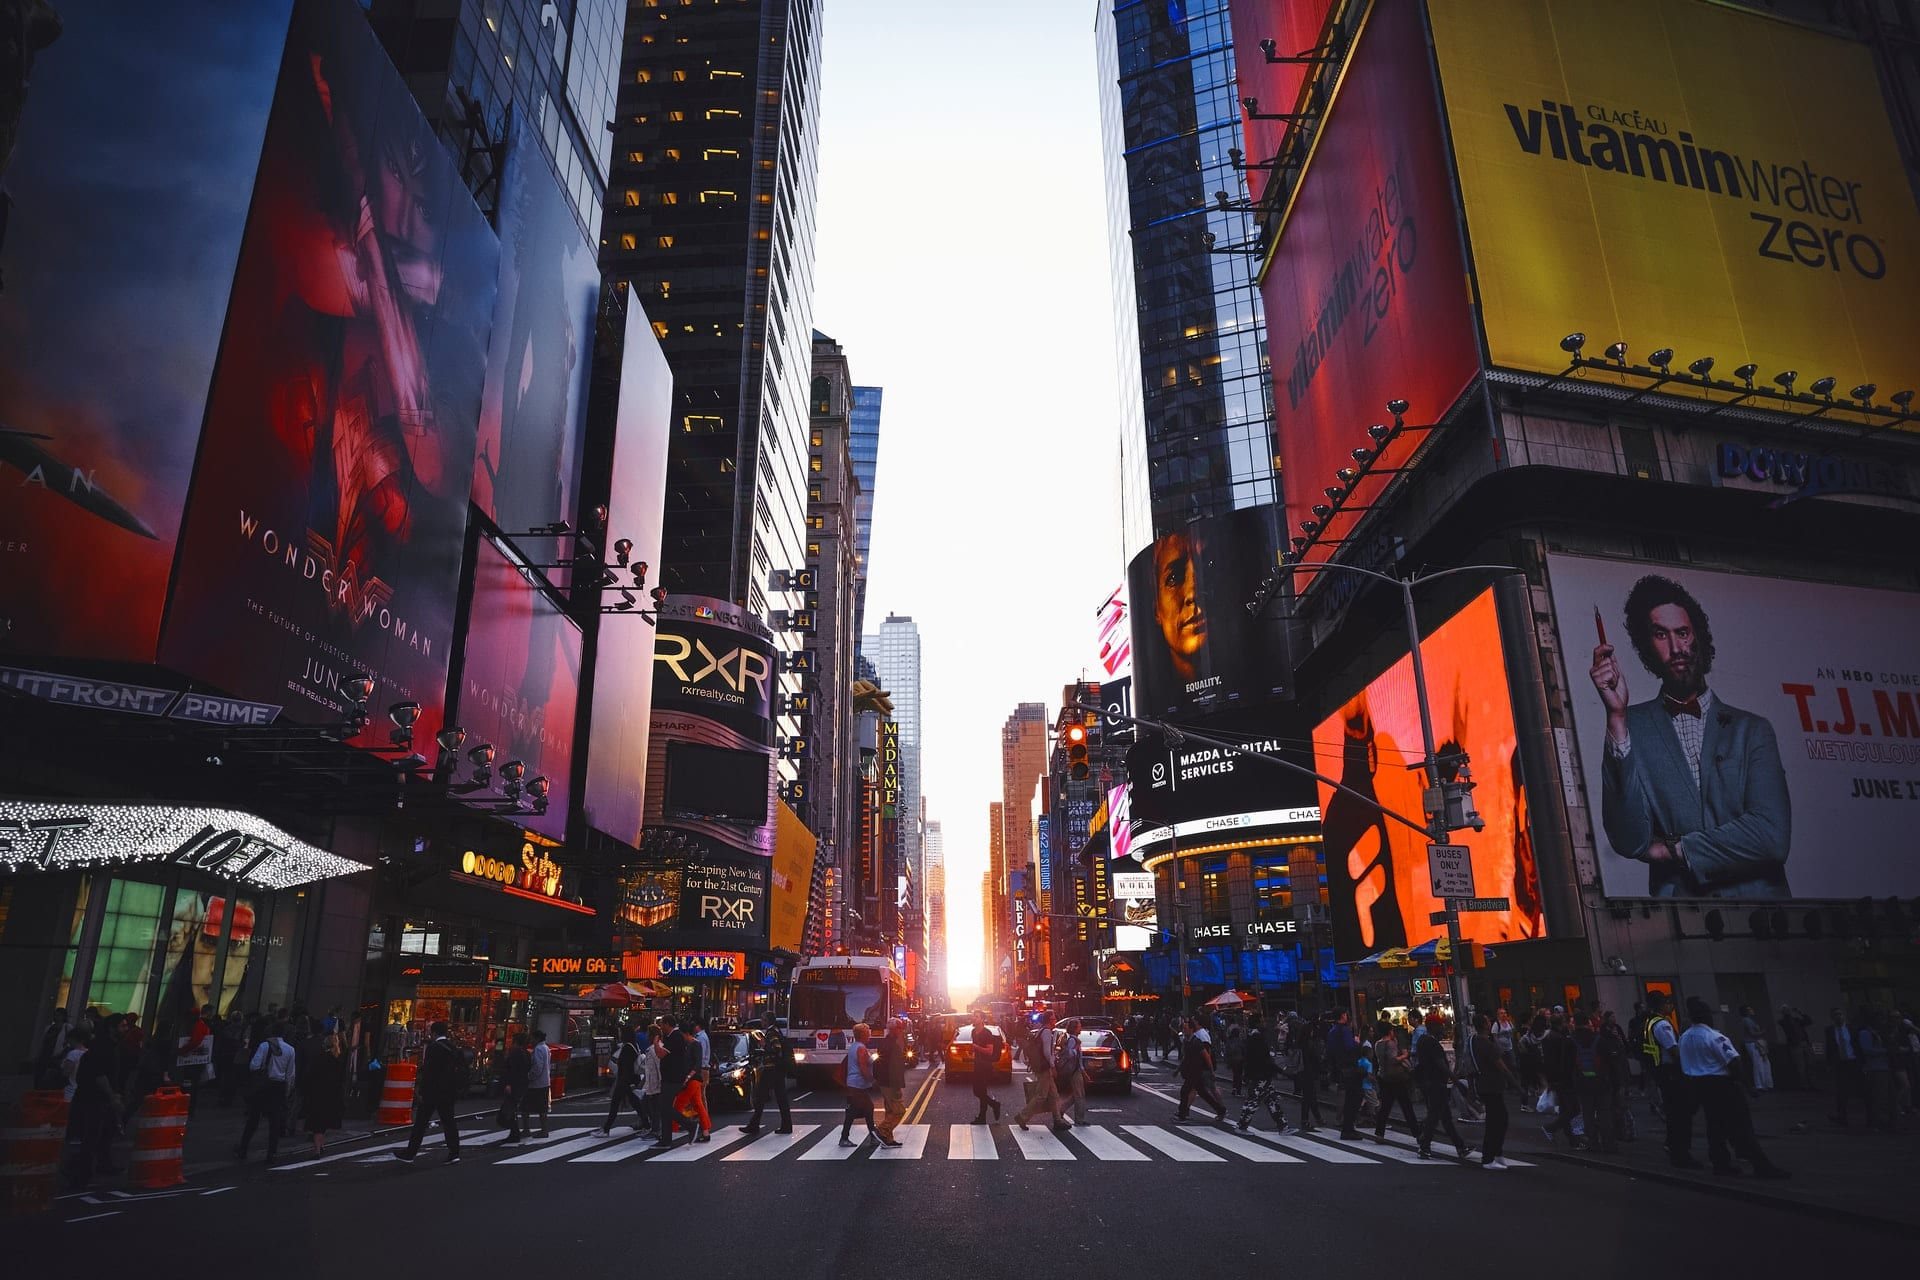 Times Square, New York, United States